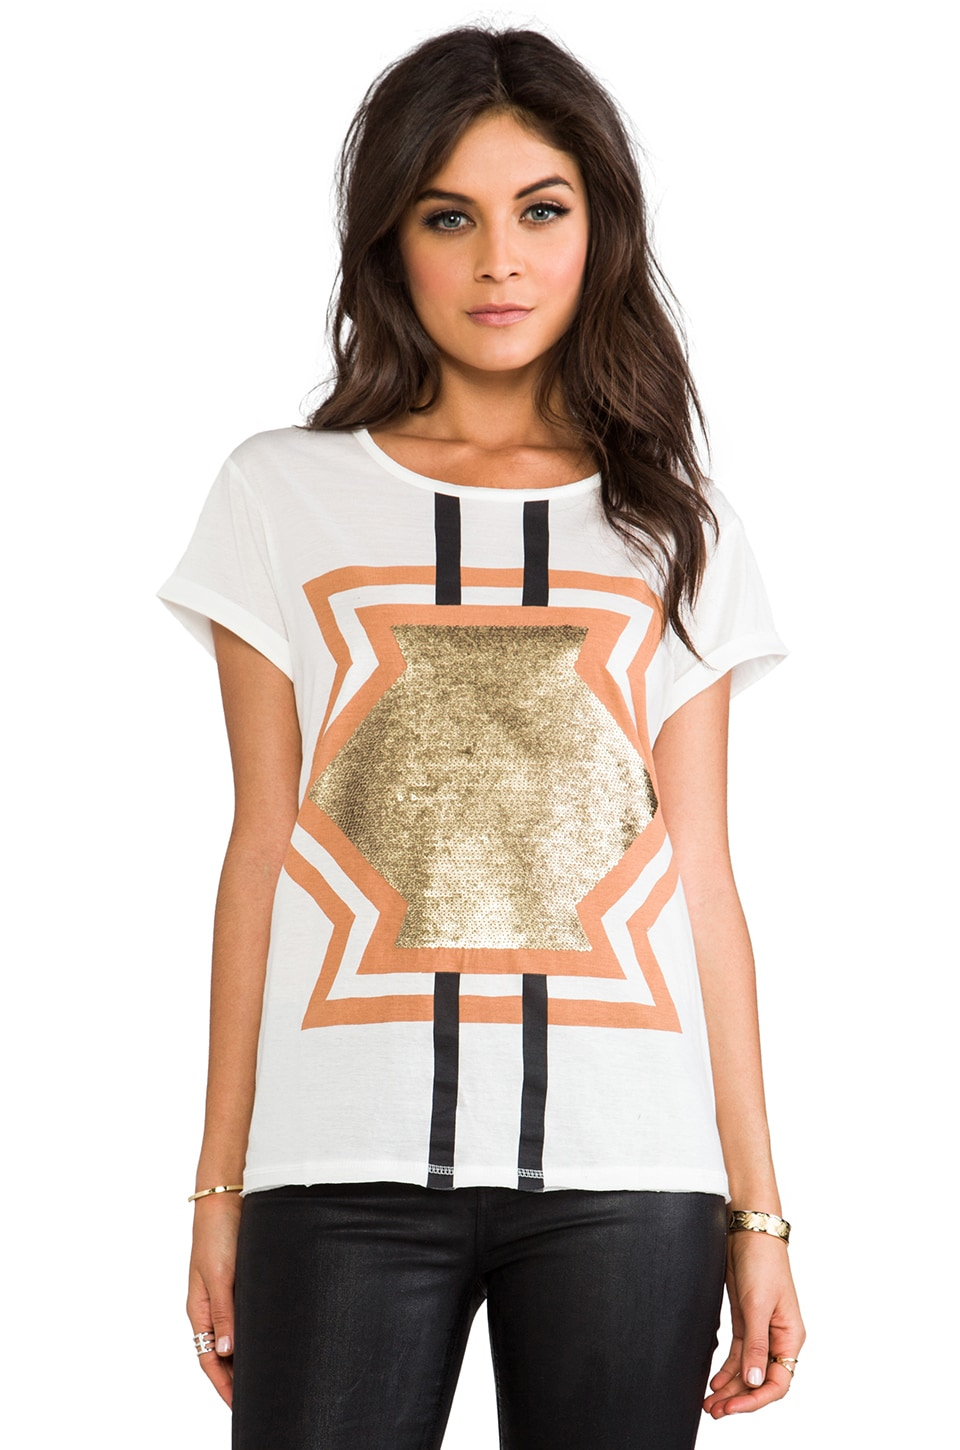 Sass & Bide The Anarchy Tee in Ivory